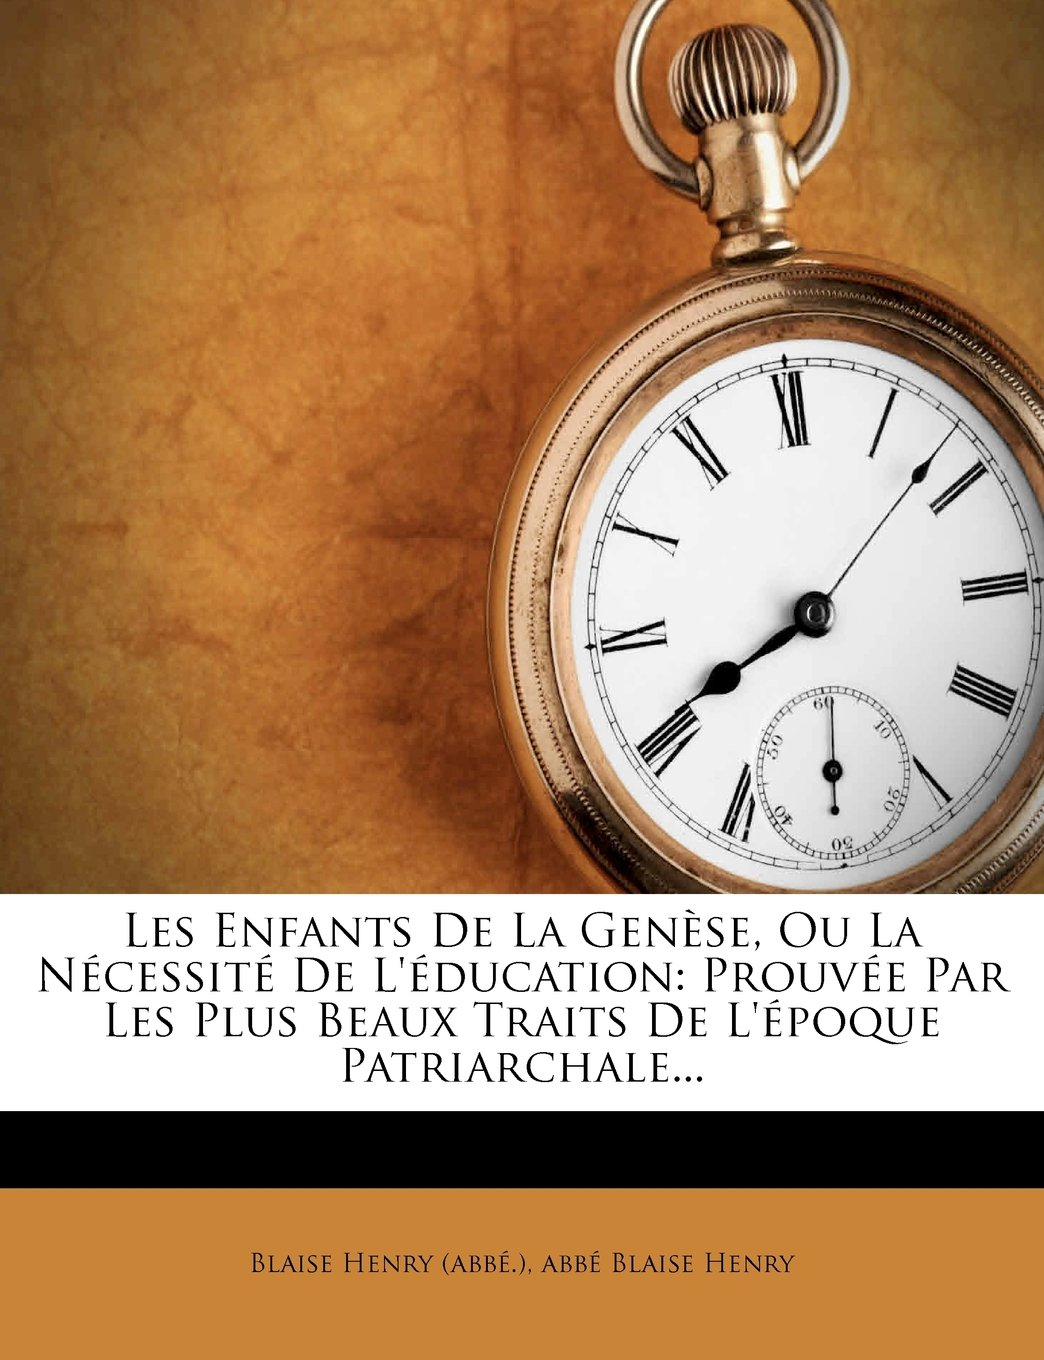 Download Les Enfants de La Genese, Ou La Necessite de L'Education: Prouvee Par Les Plus Beaux Traits de L'Epoque Patriarchale... (French Edition) PDF